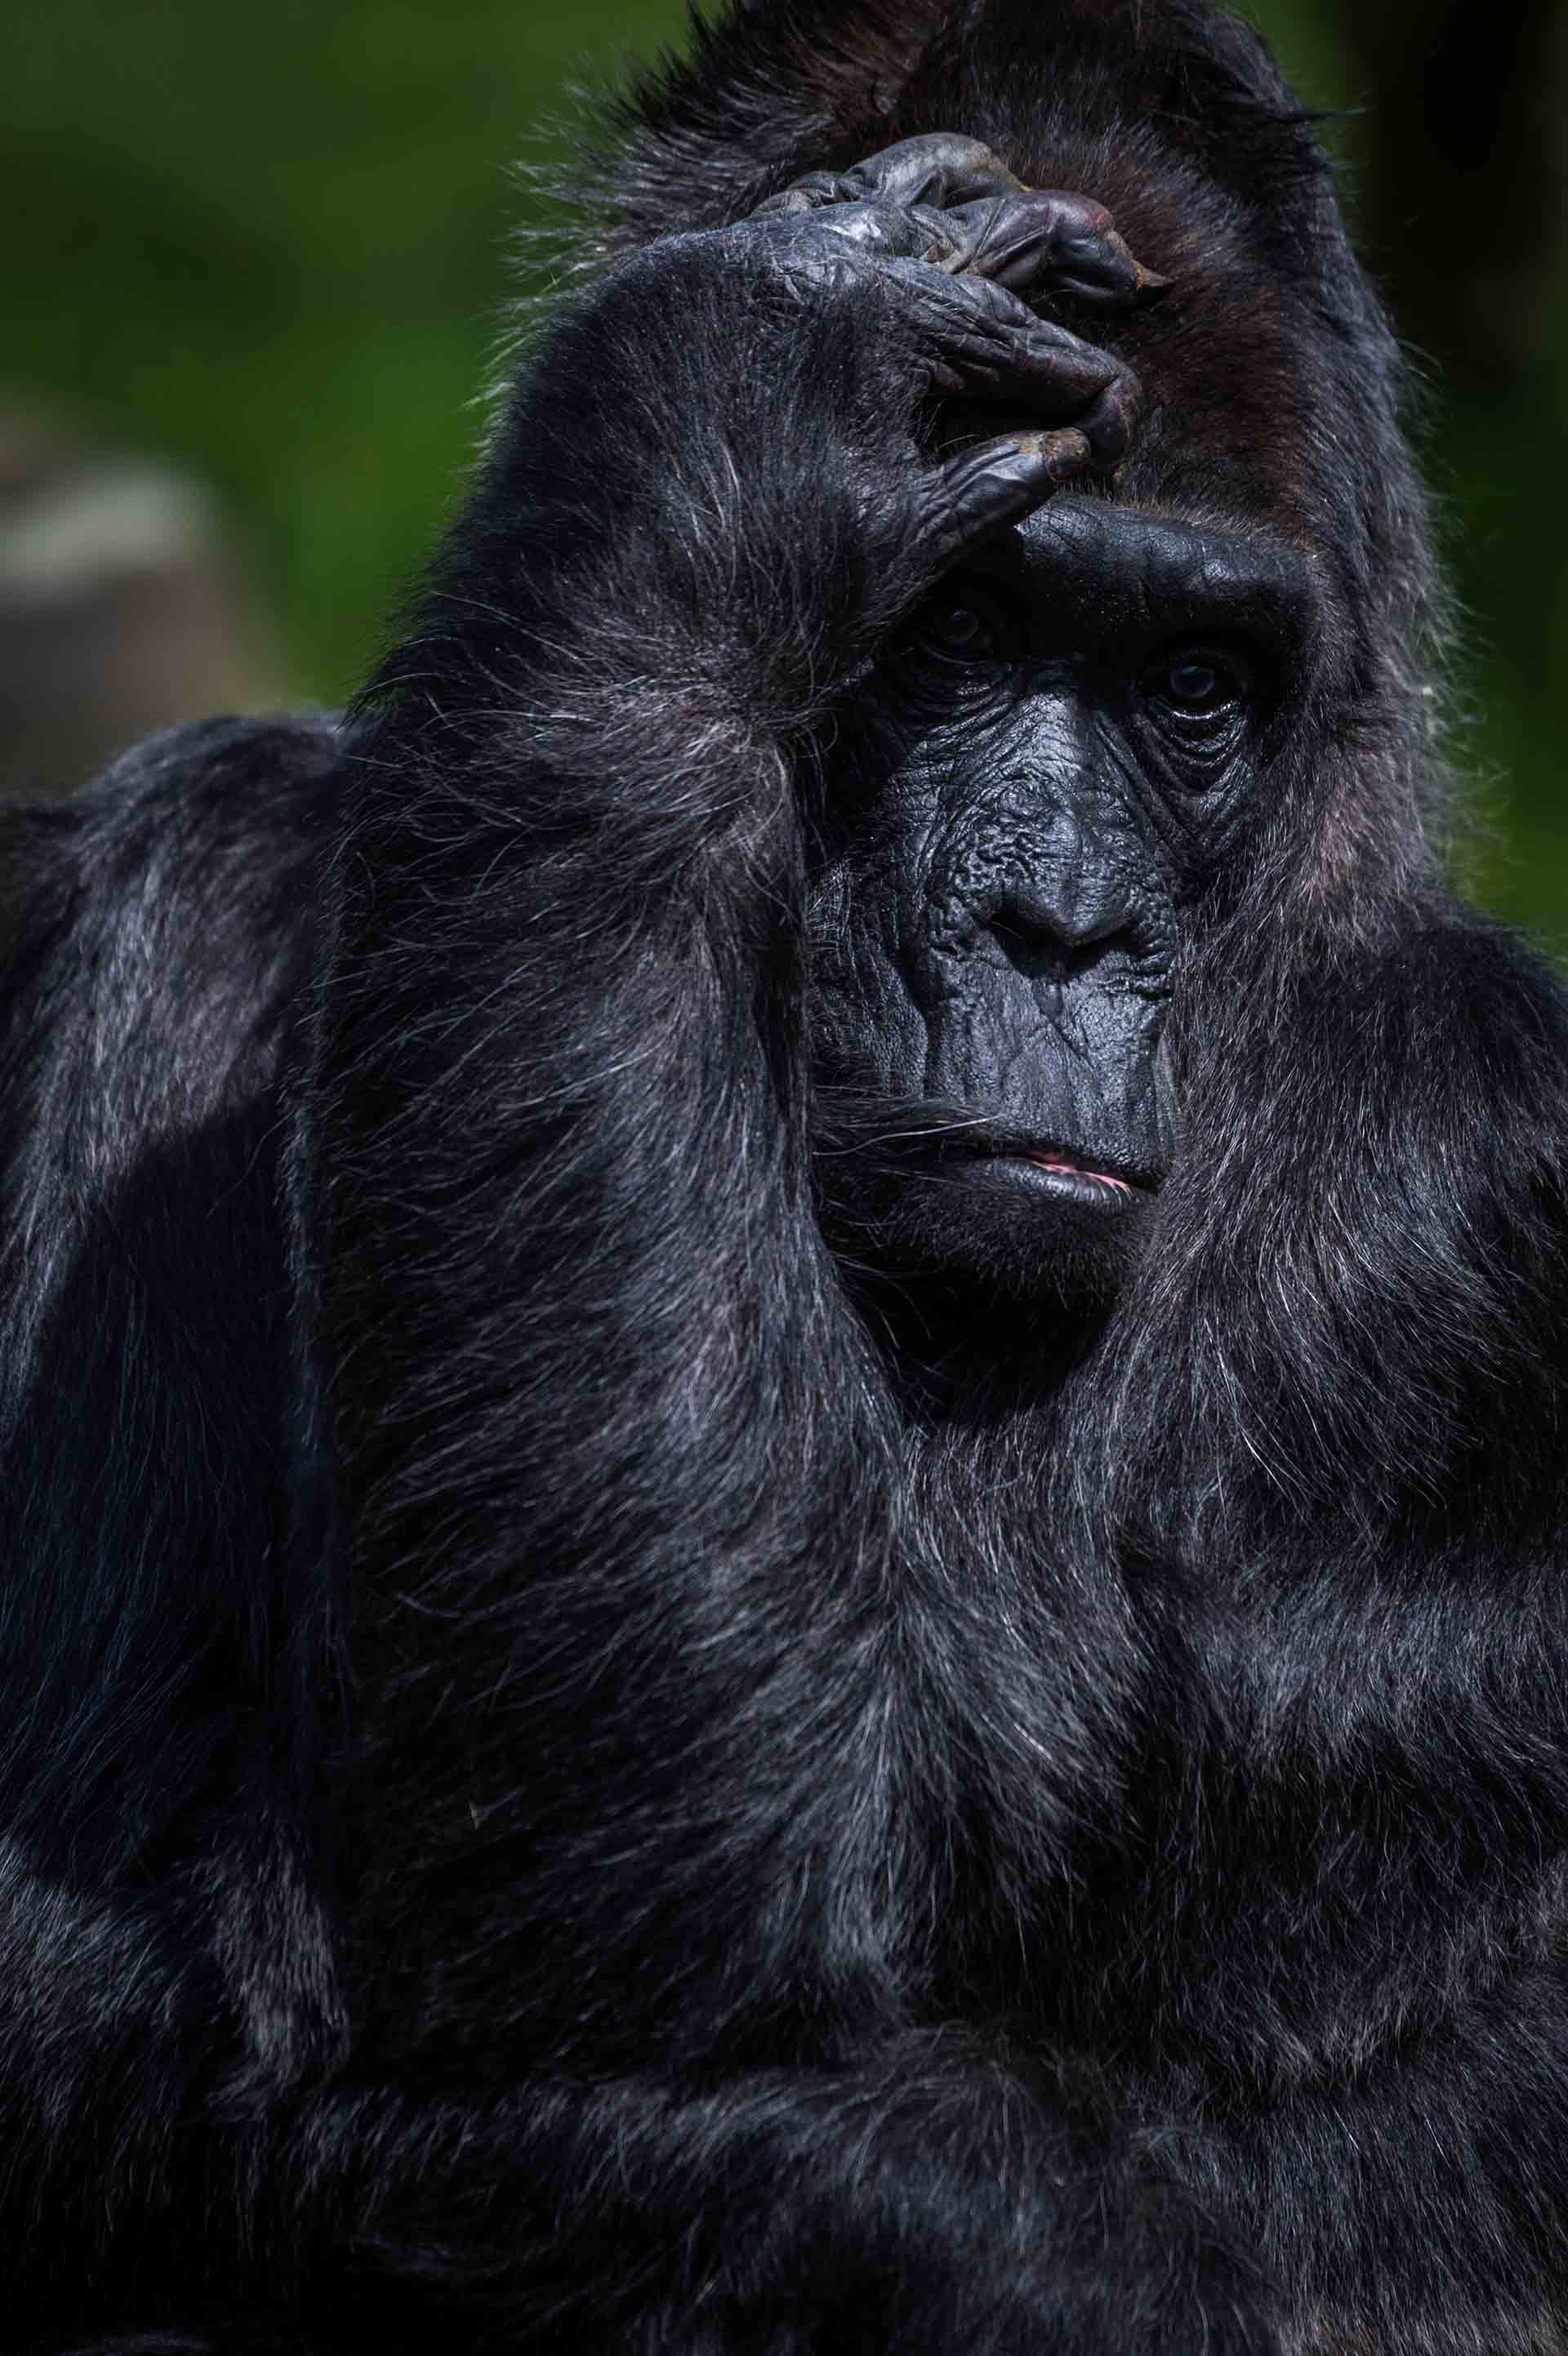 Gorilla At A Zoo In Germany